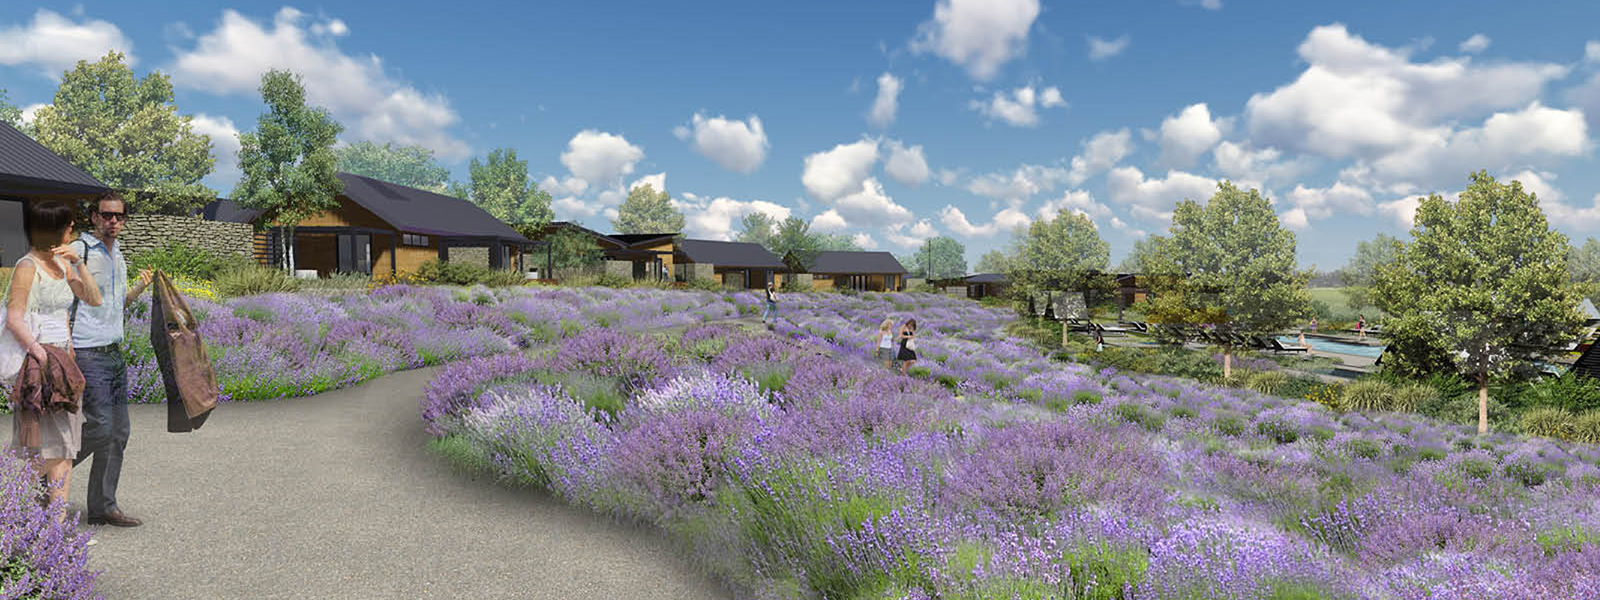 Stanly Ranch Resort Wins ASLA Colorado Award of Merit for Planning in 2015